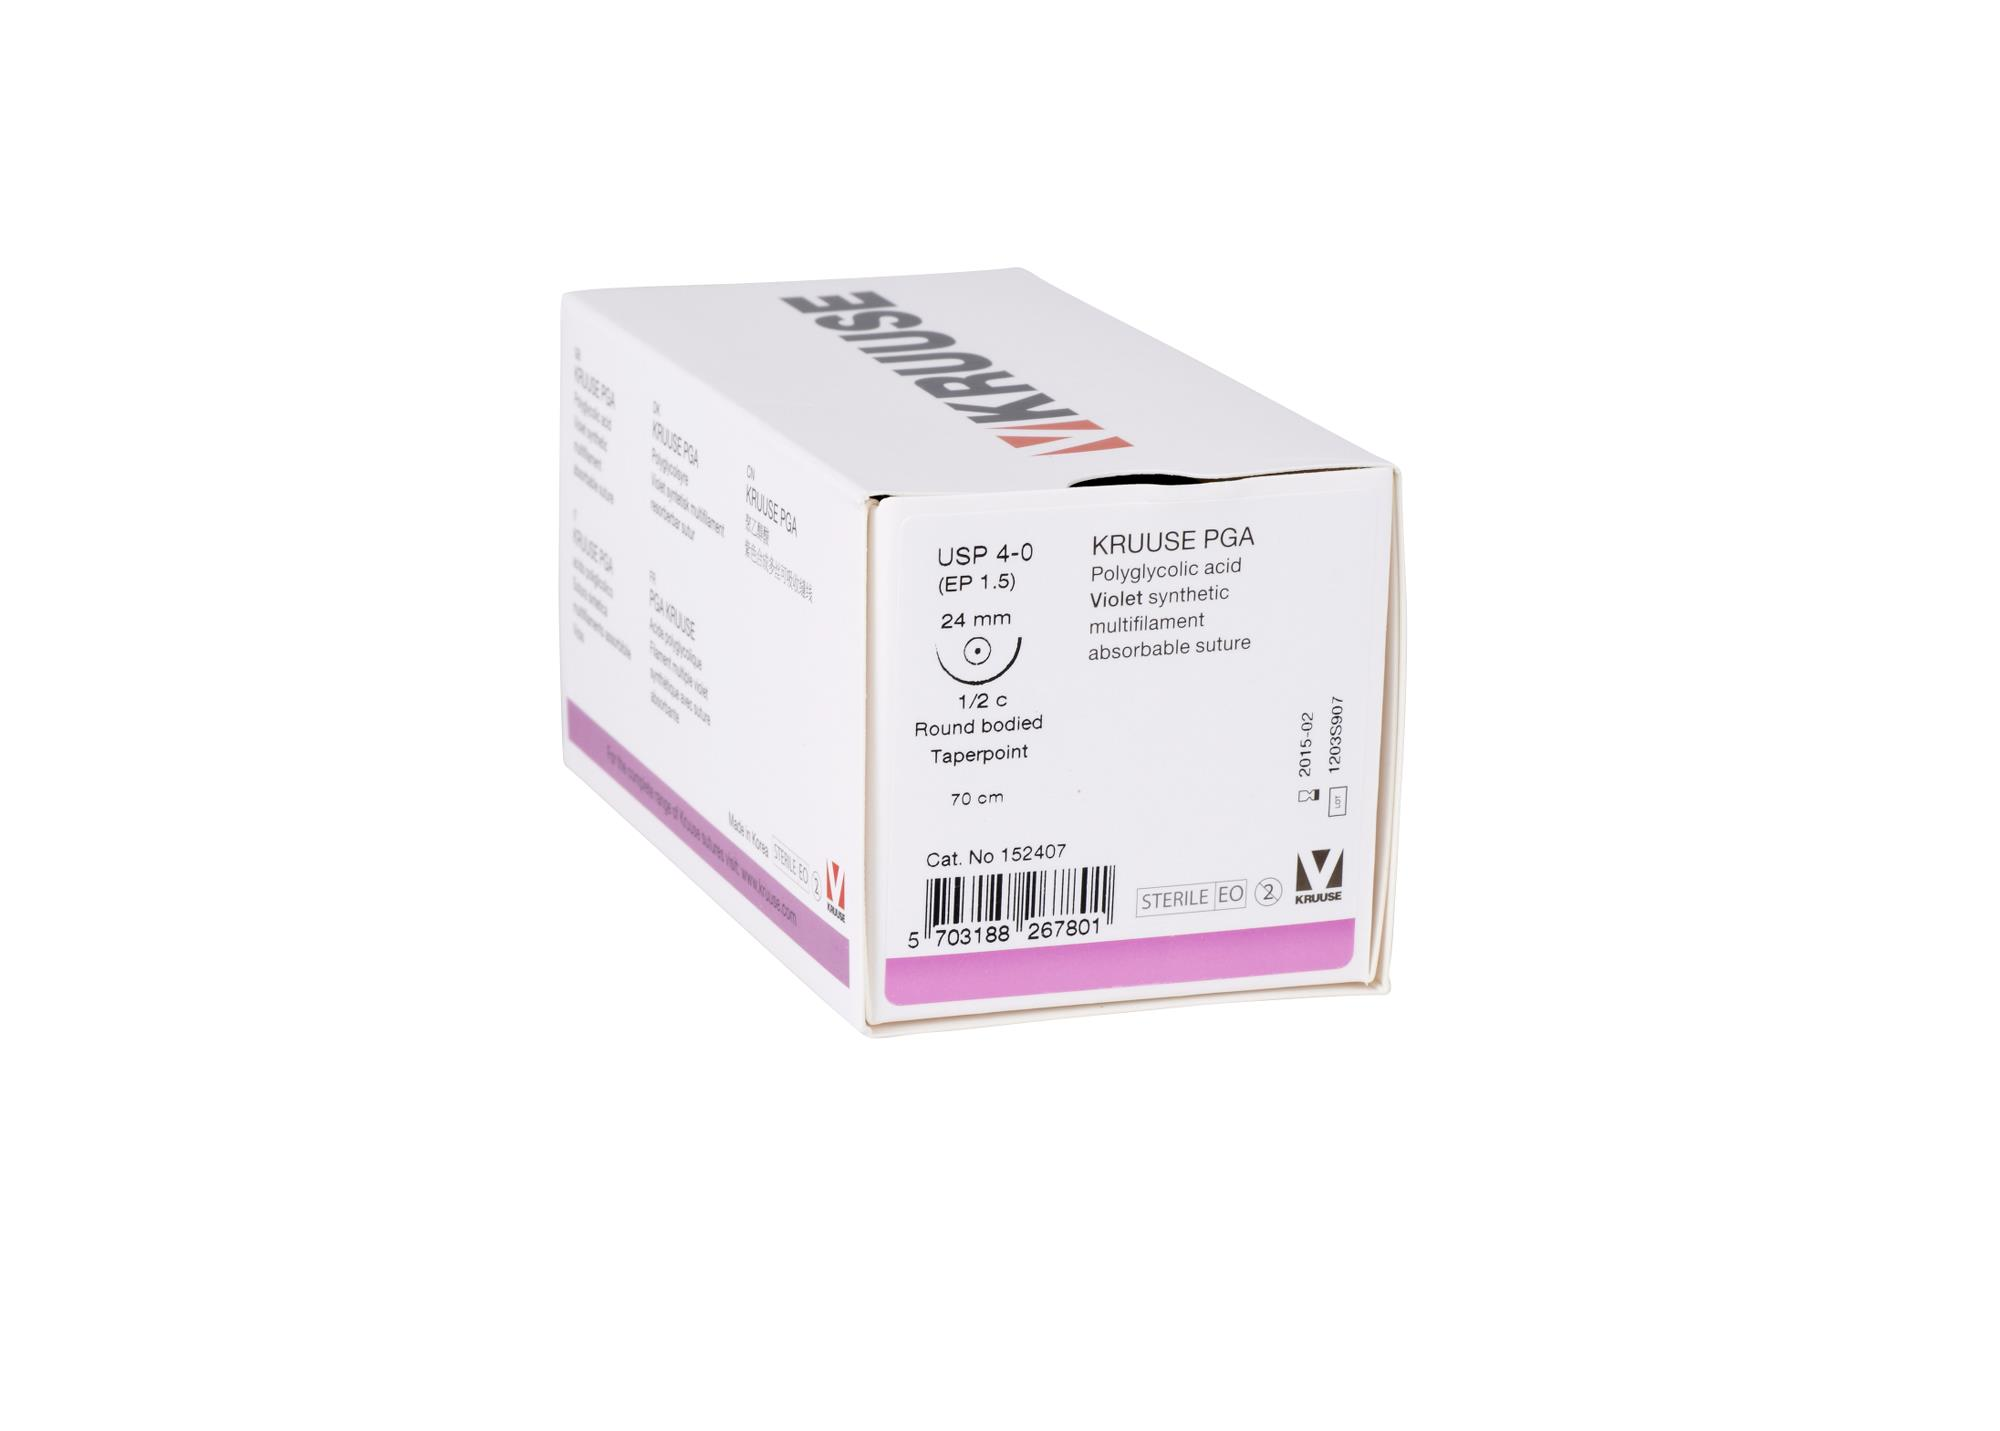 KRUUSE PGA suture, USP 4-0, 70 cm, needle: 24 mm, round bodied - taper-point, ½ circle. 18/pk